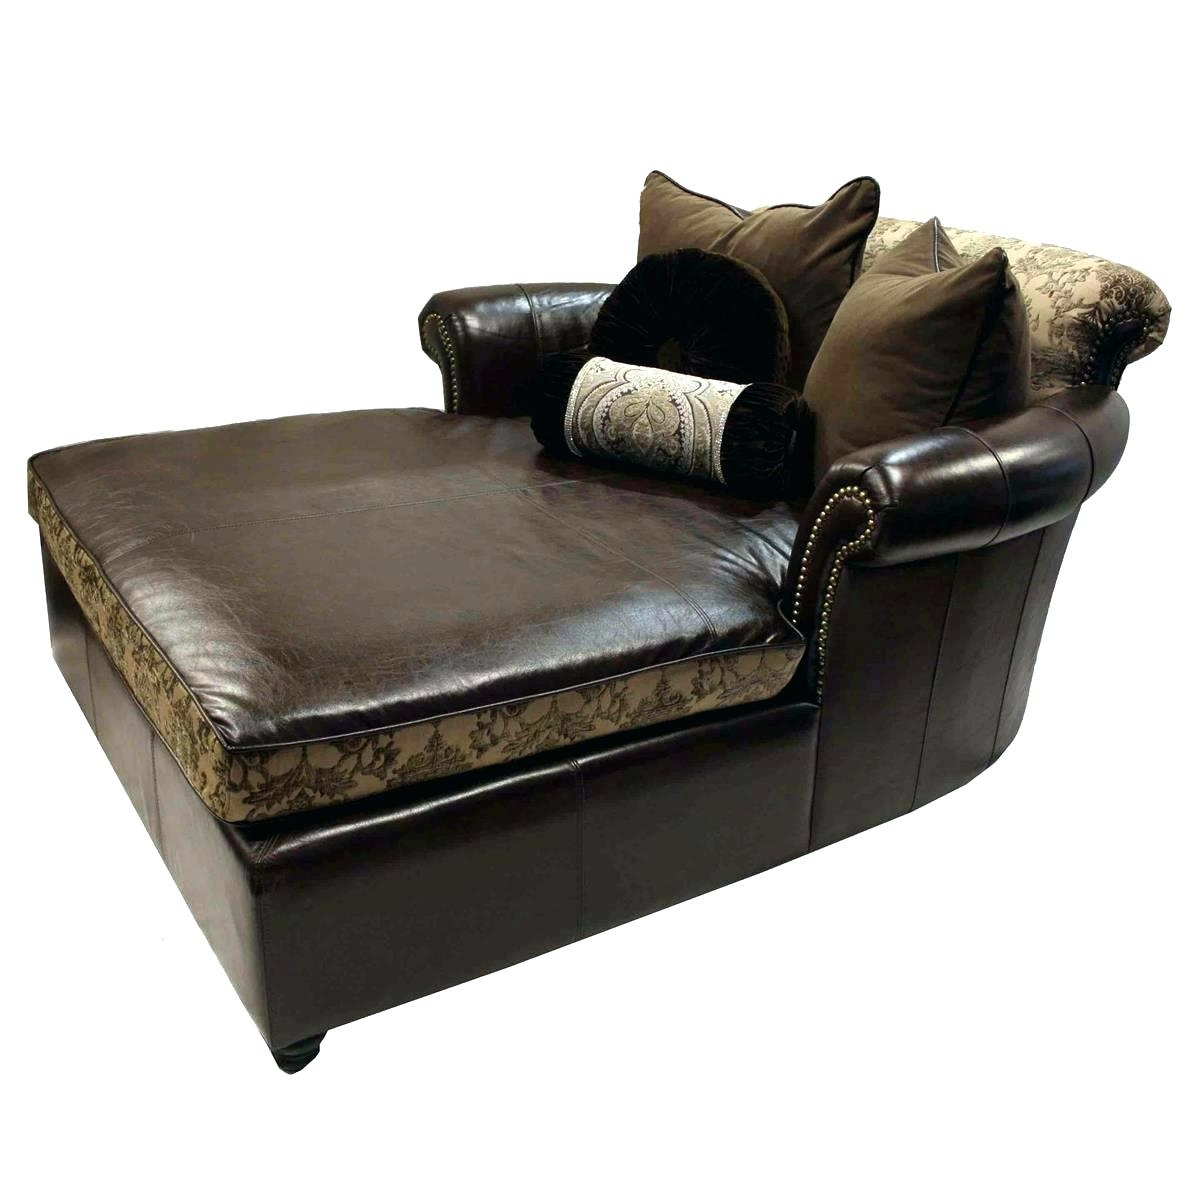 Two Person Chaise Lounge Sofa Chair Outdoor Patio – With Regard To Newest Two Person Chaise Lounges (View 11 of 15)